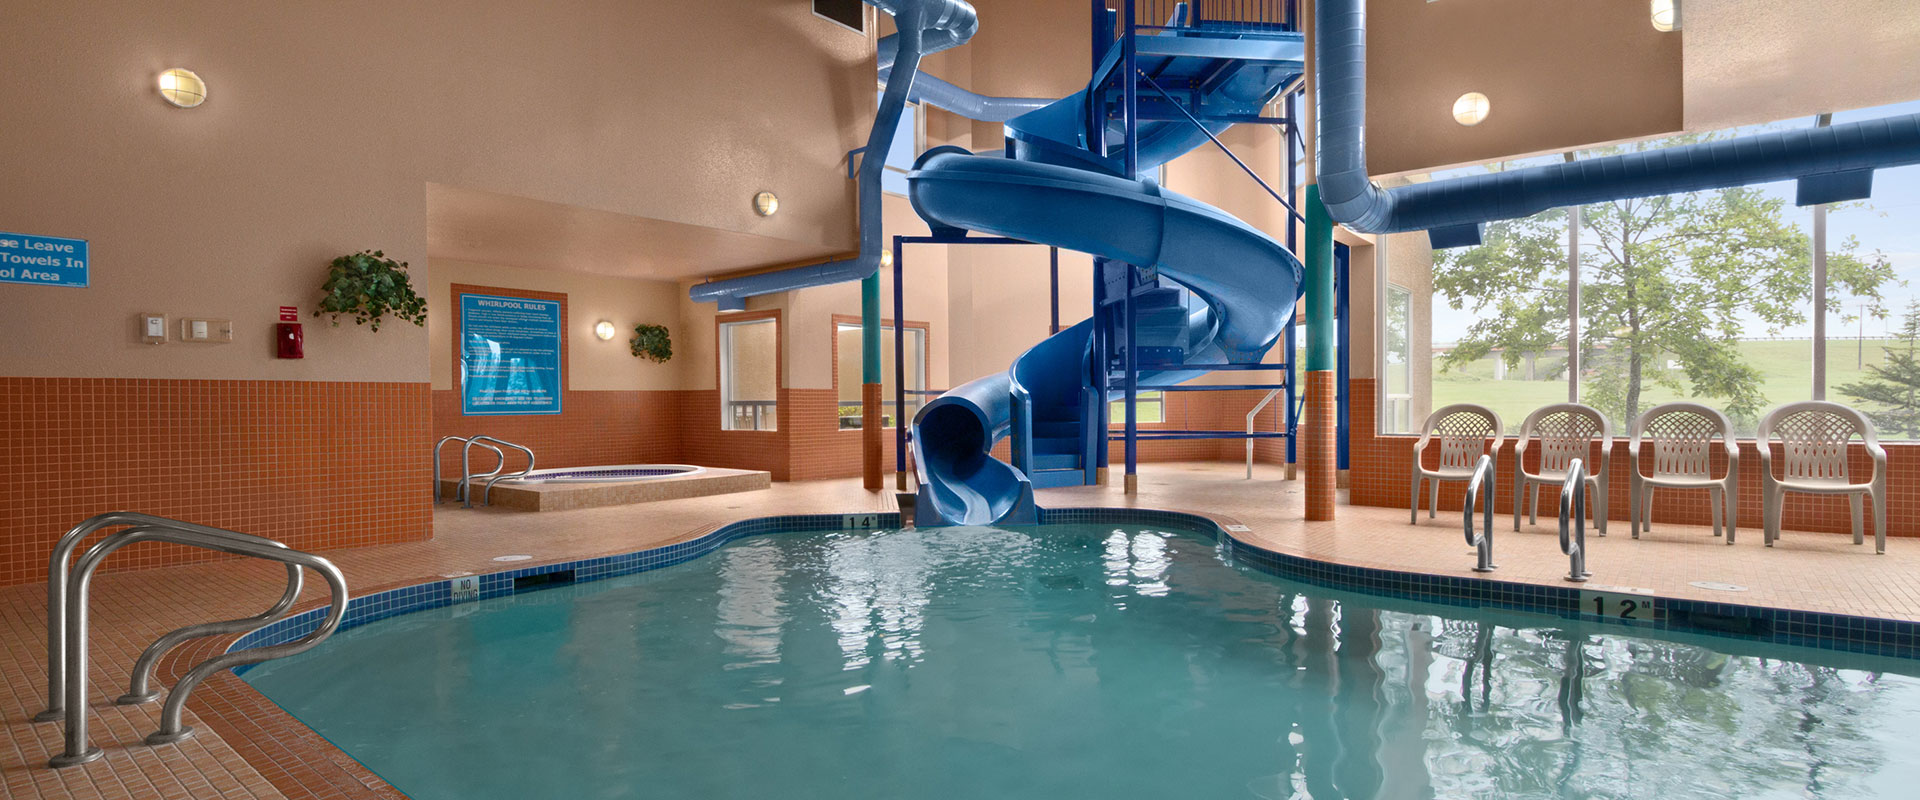 Heated indoor pool with a large waterslide and hot tub at Days Inn Red Deer, Alberta.